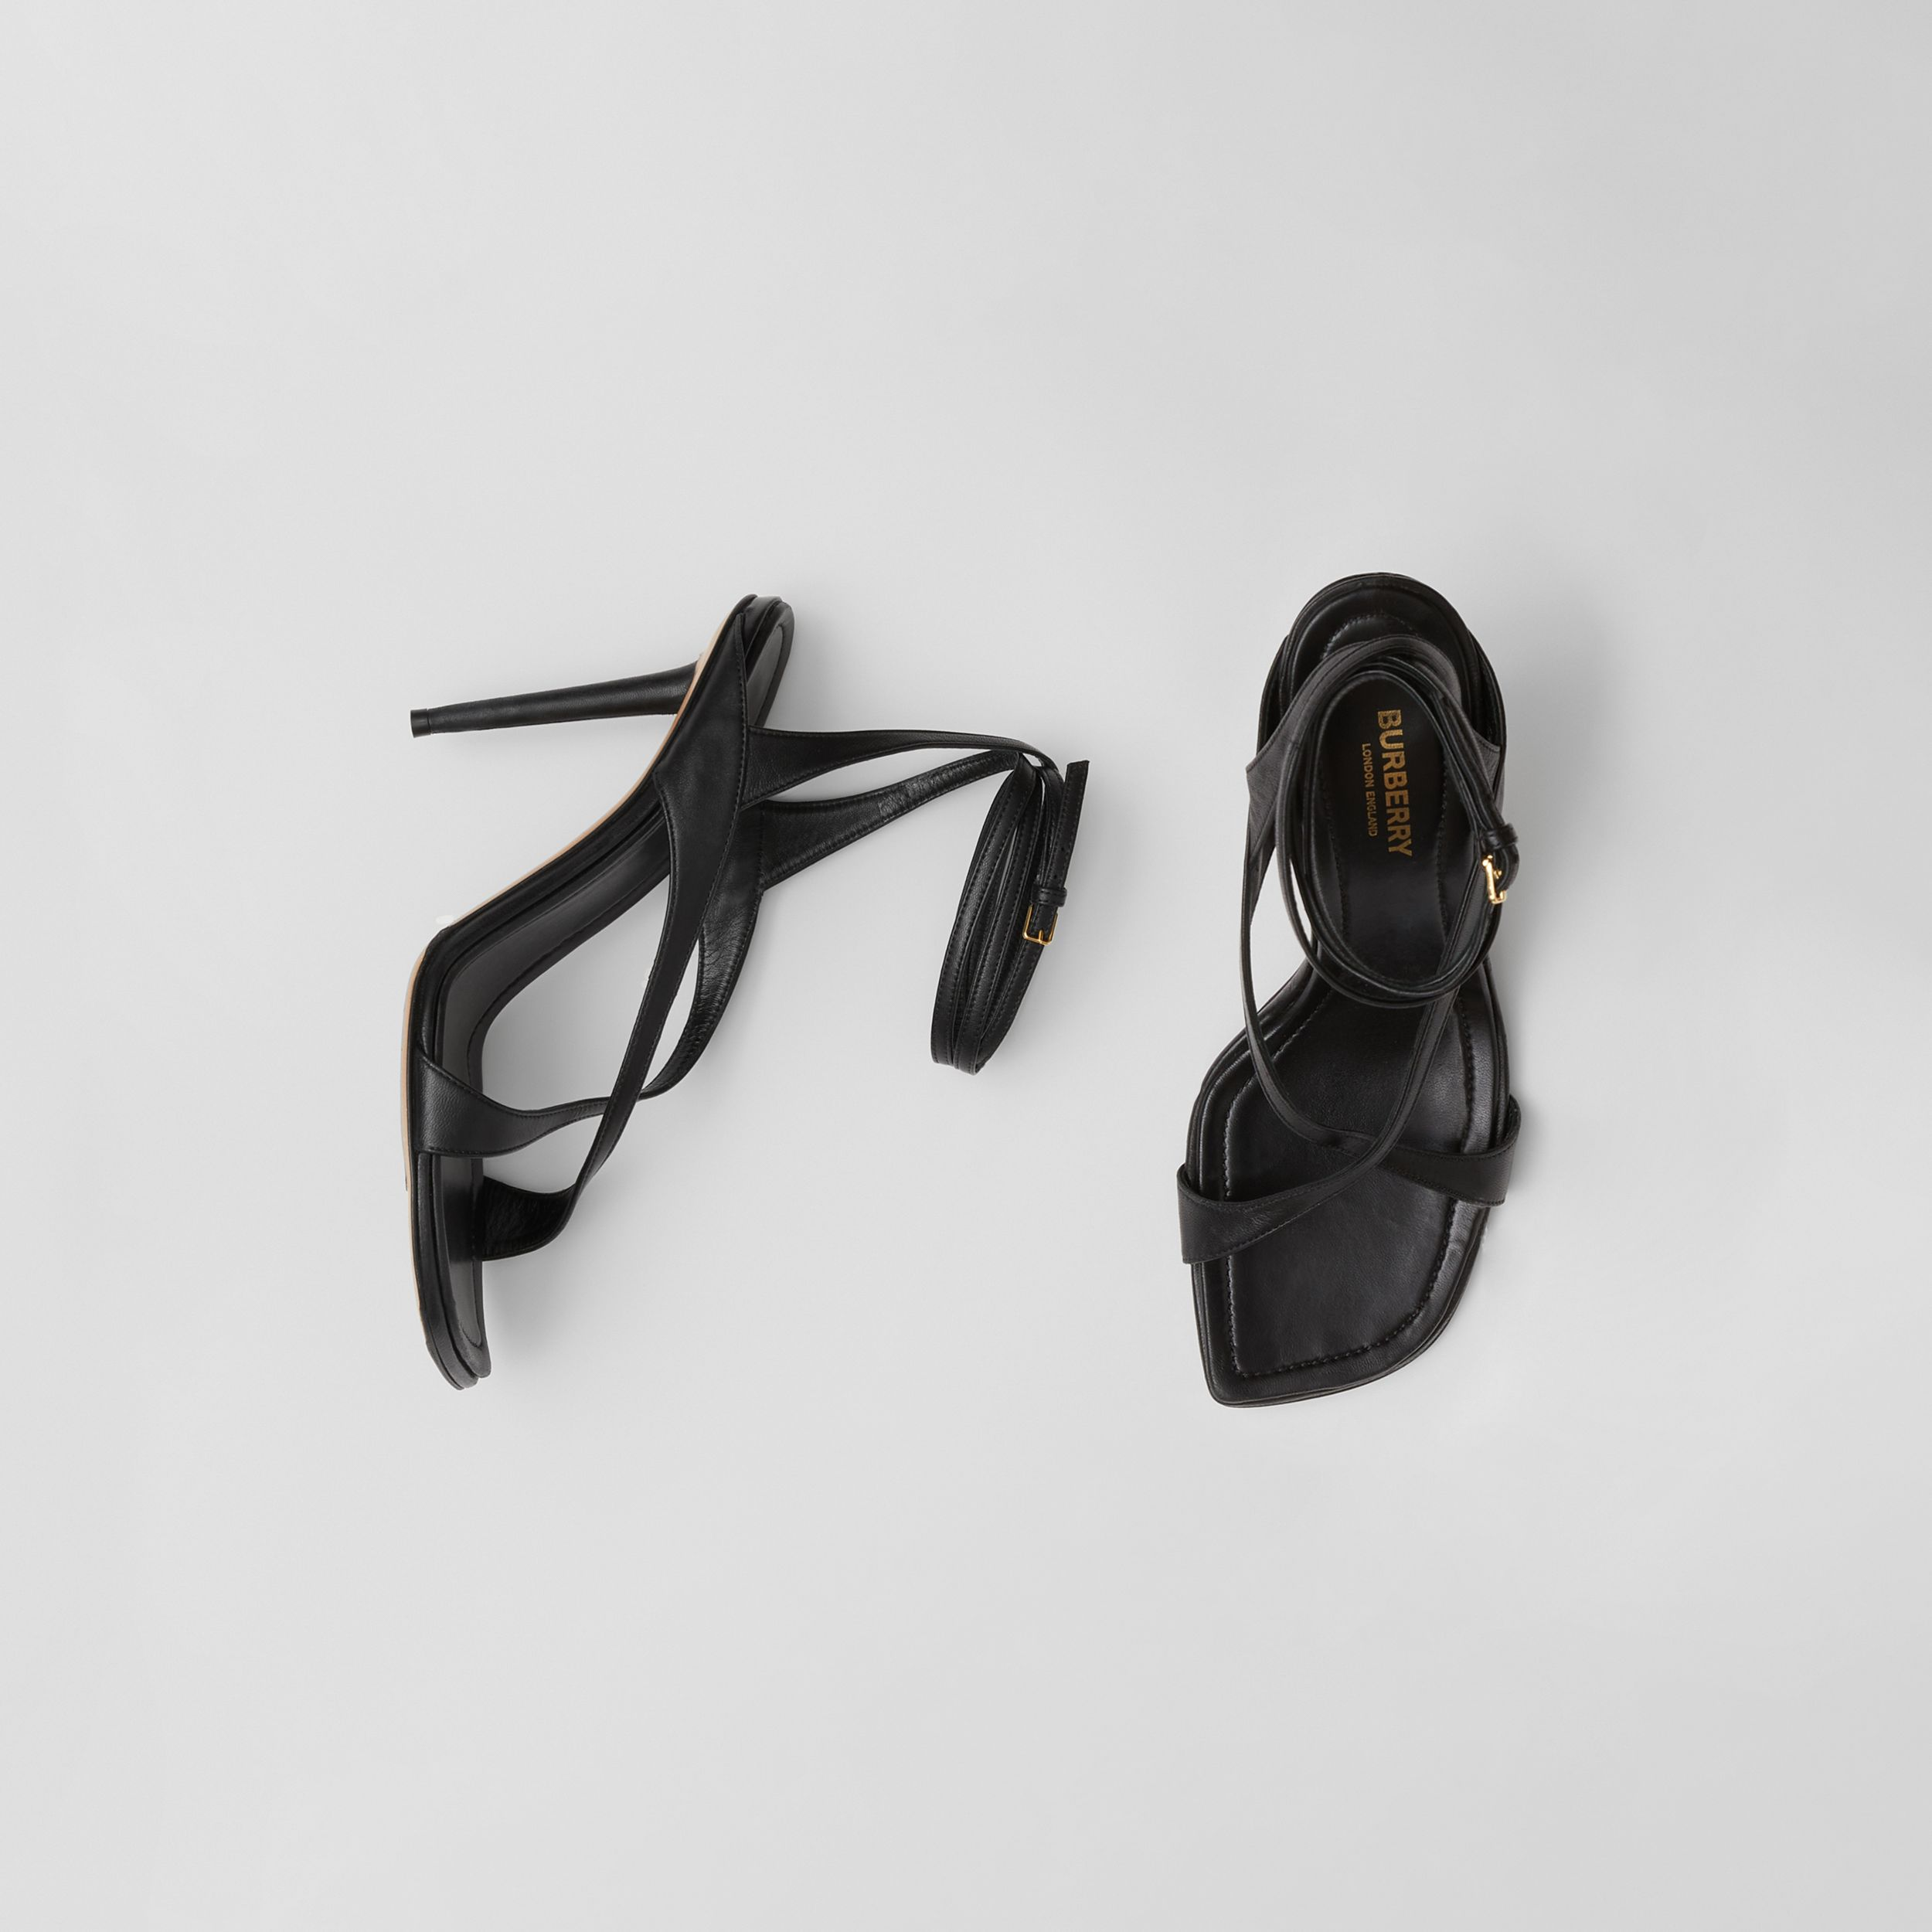 Lambskin Wraparound Stiletto-heel Sandals in Black - Women | Burberry - 1